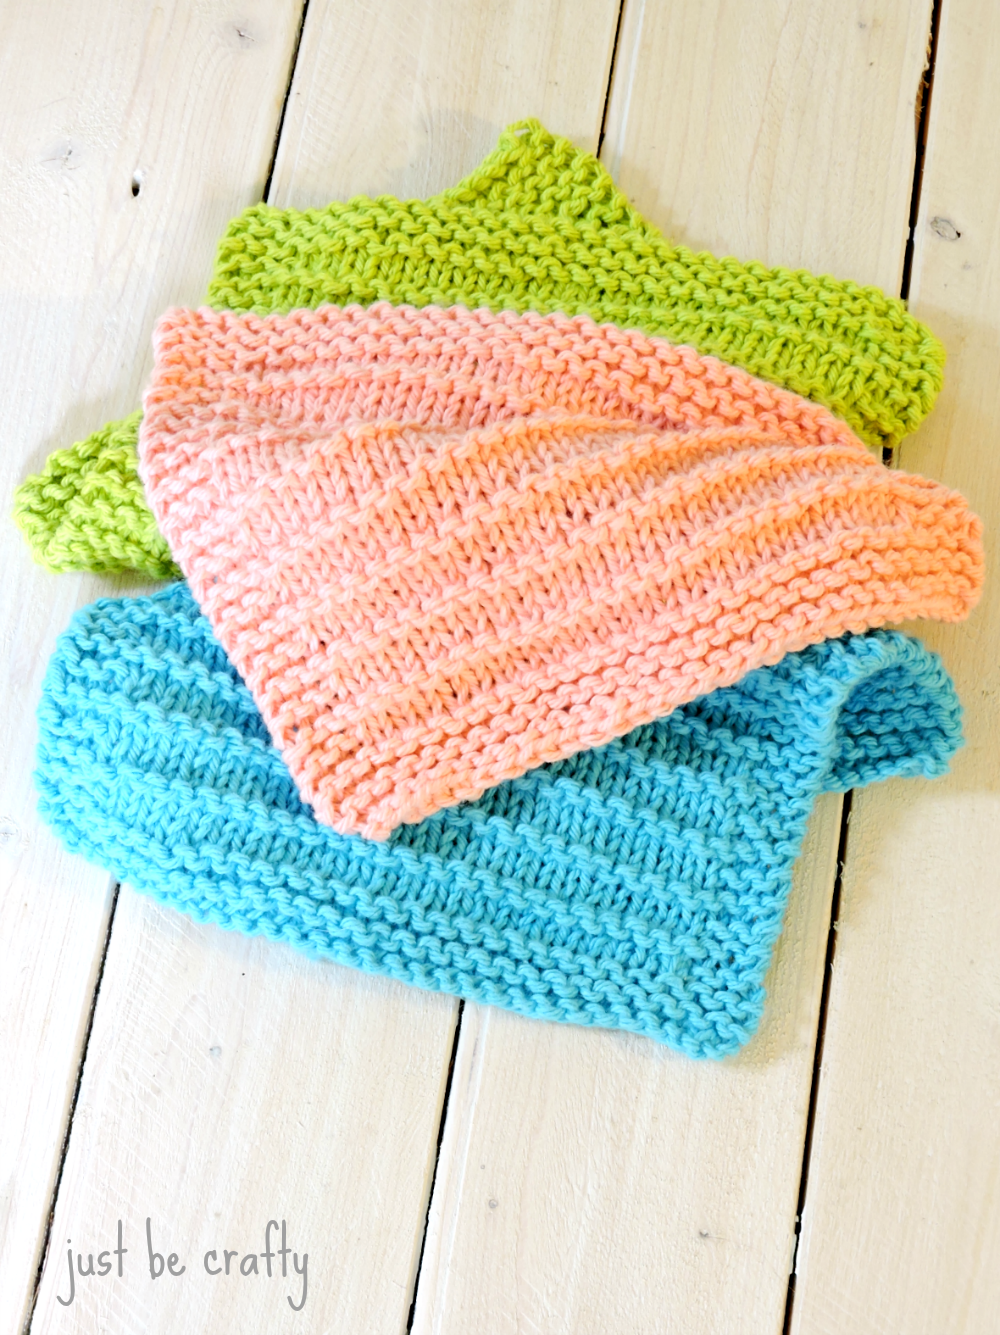 Knitting A Dishcloth Pattern Easy : Farmhouse Kitchen Knitted Dishcloths - Just Be Crafty